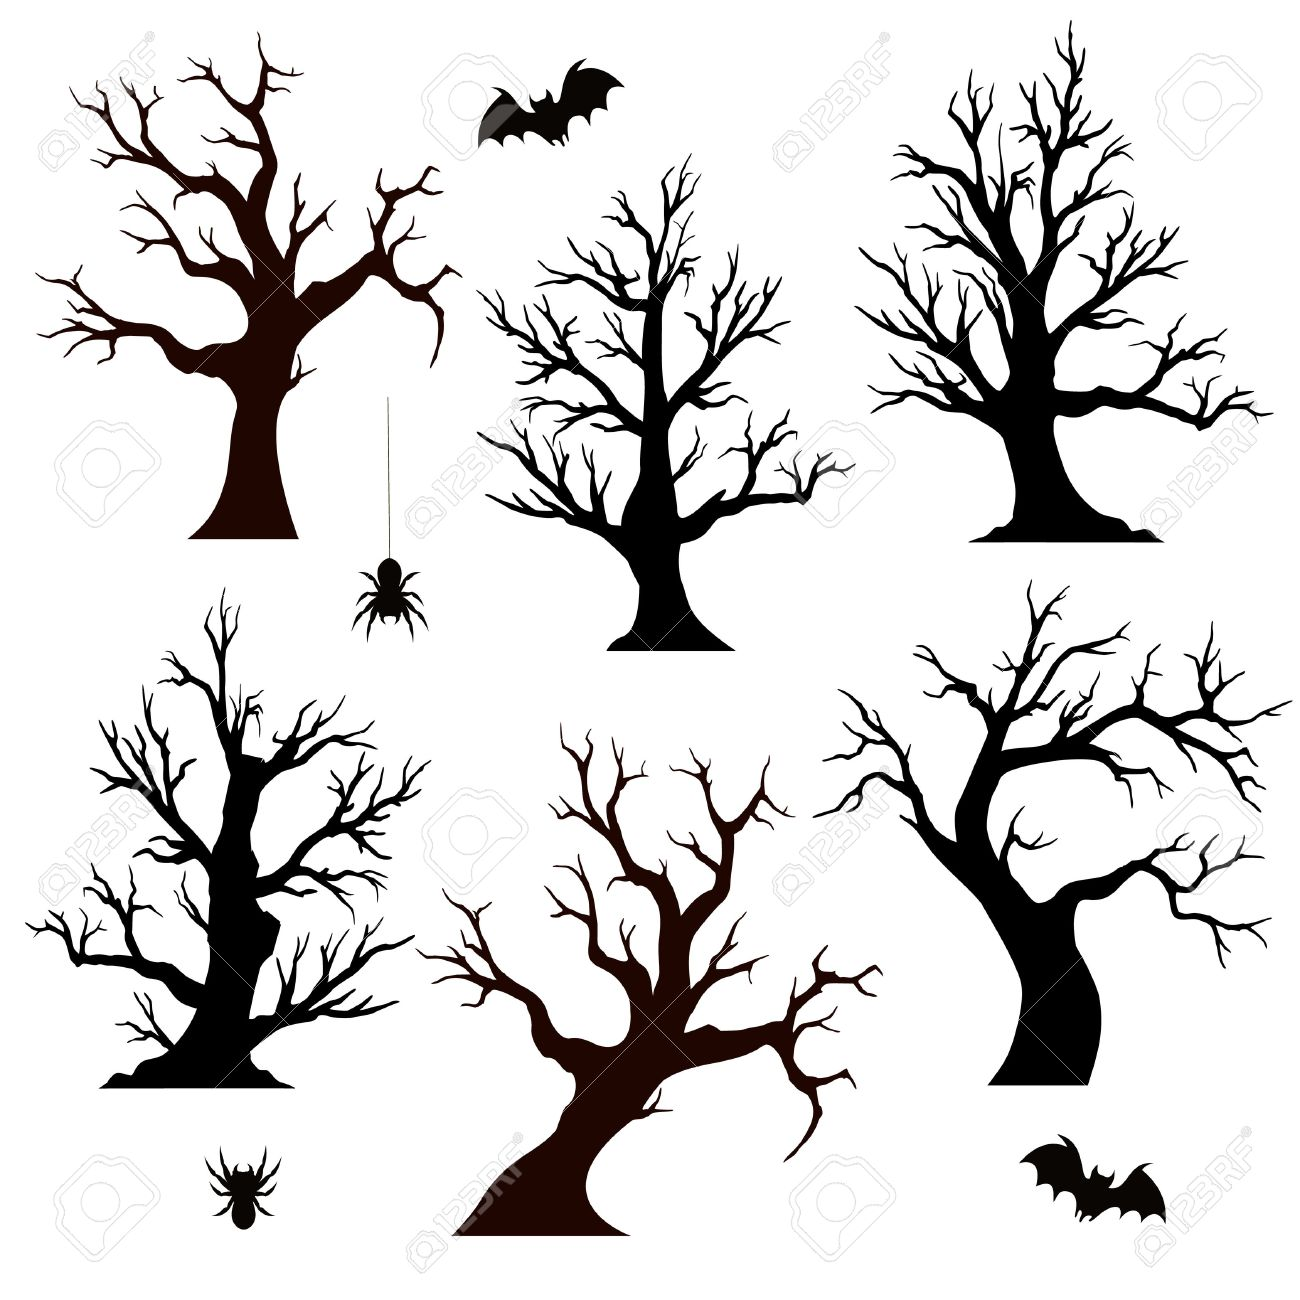 Halloween trees, spiders and bats on white background - 46612597